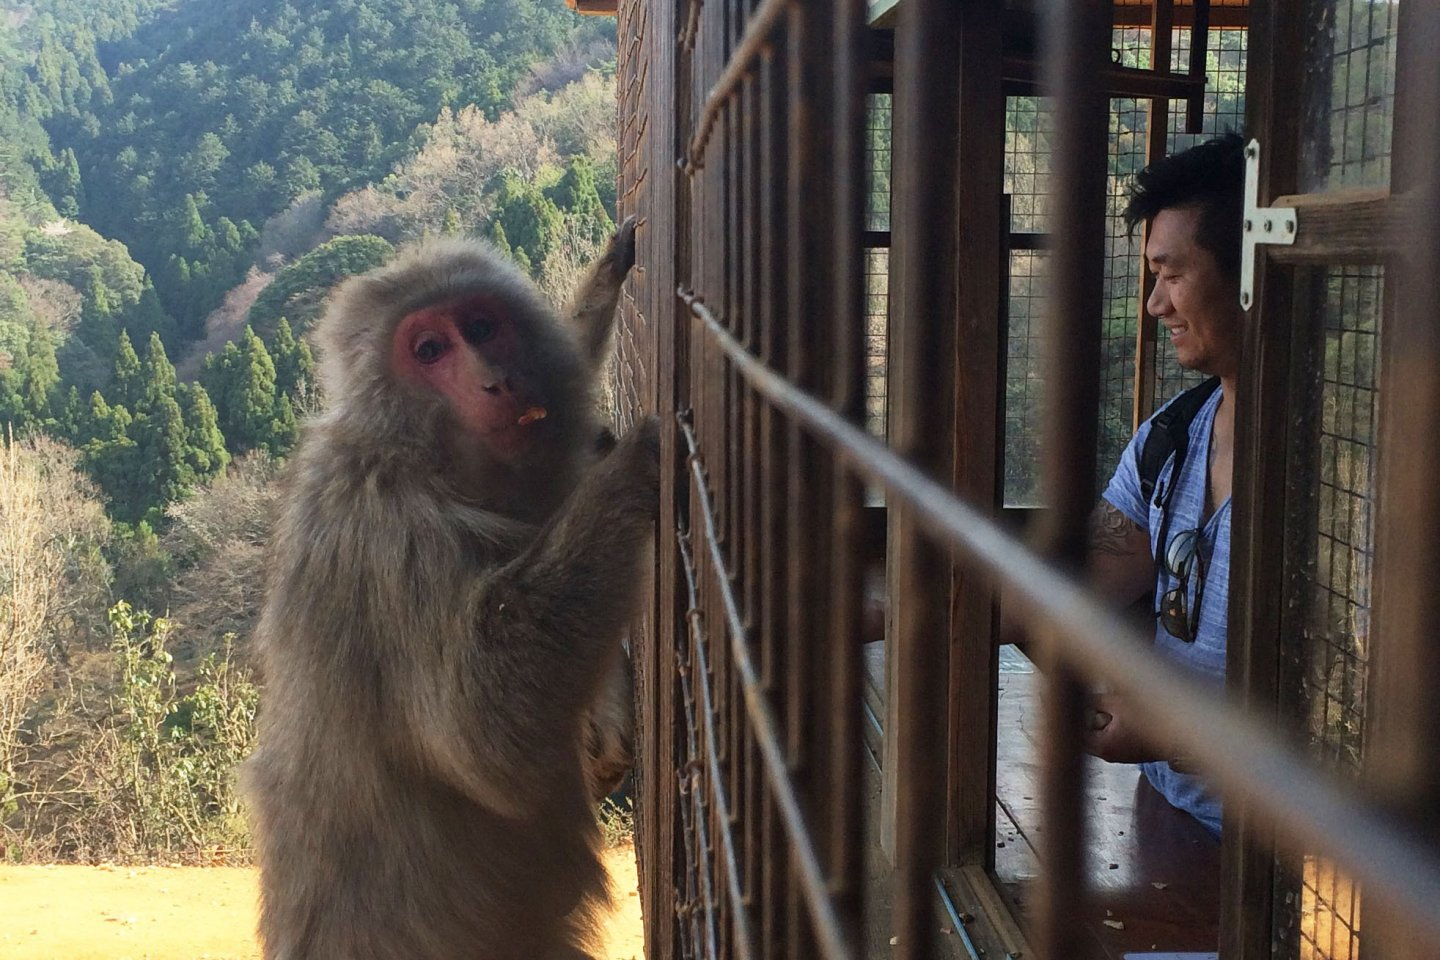 Go inside the caged area to feed the monkey at Monkey Park Iwatayama.